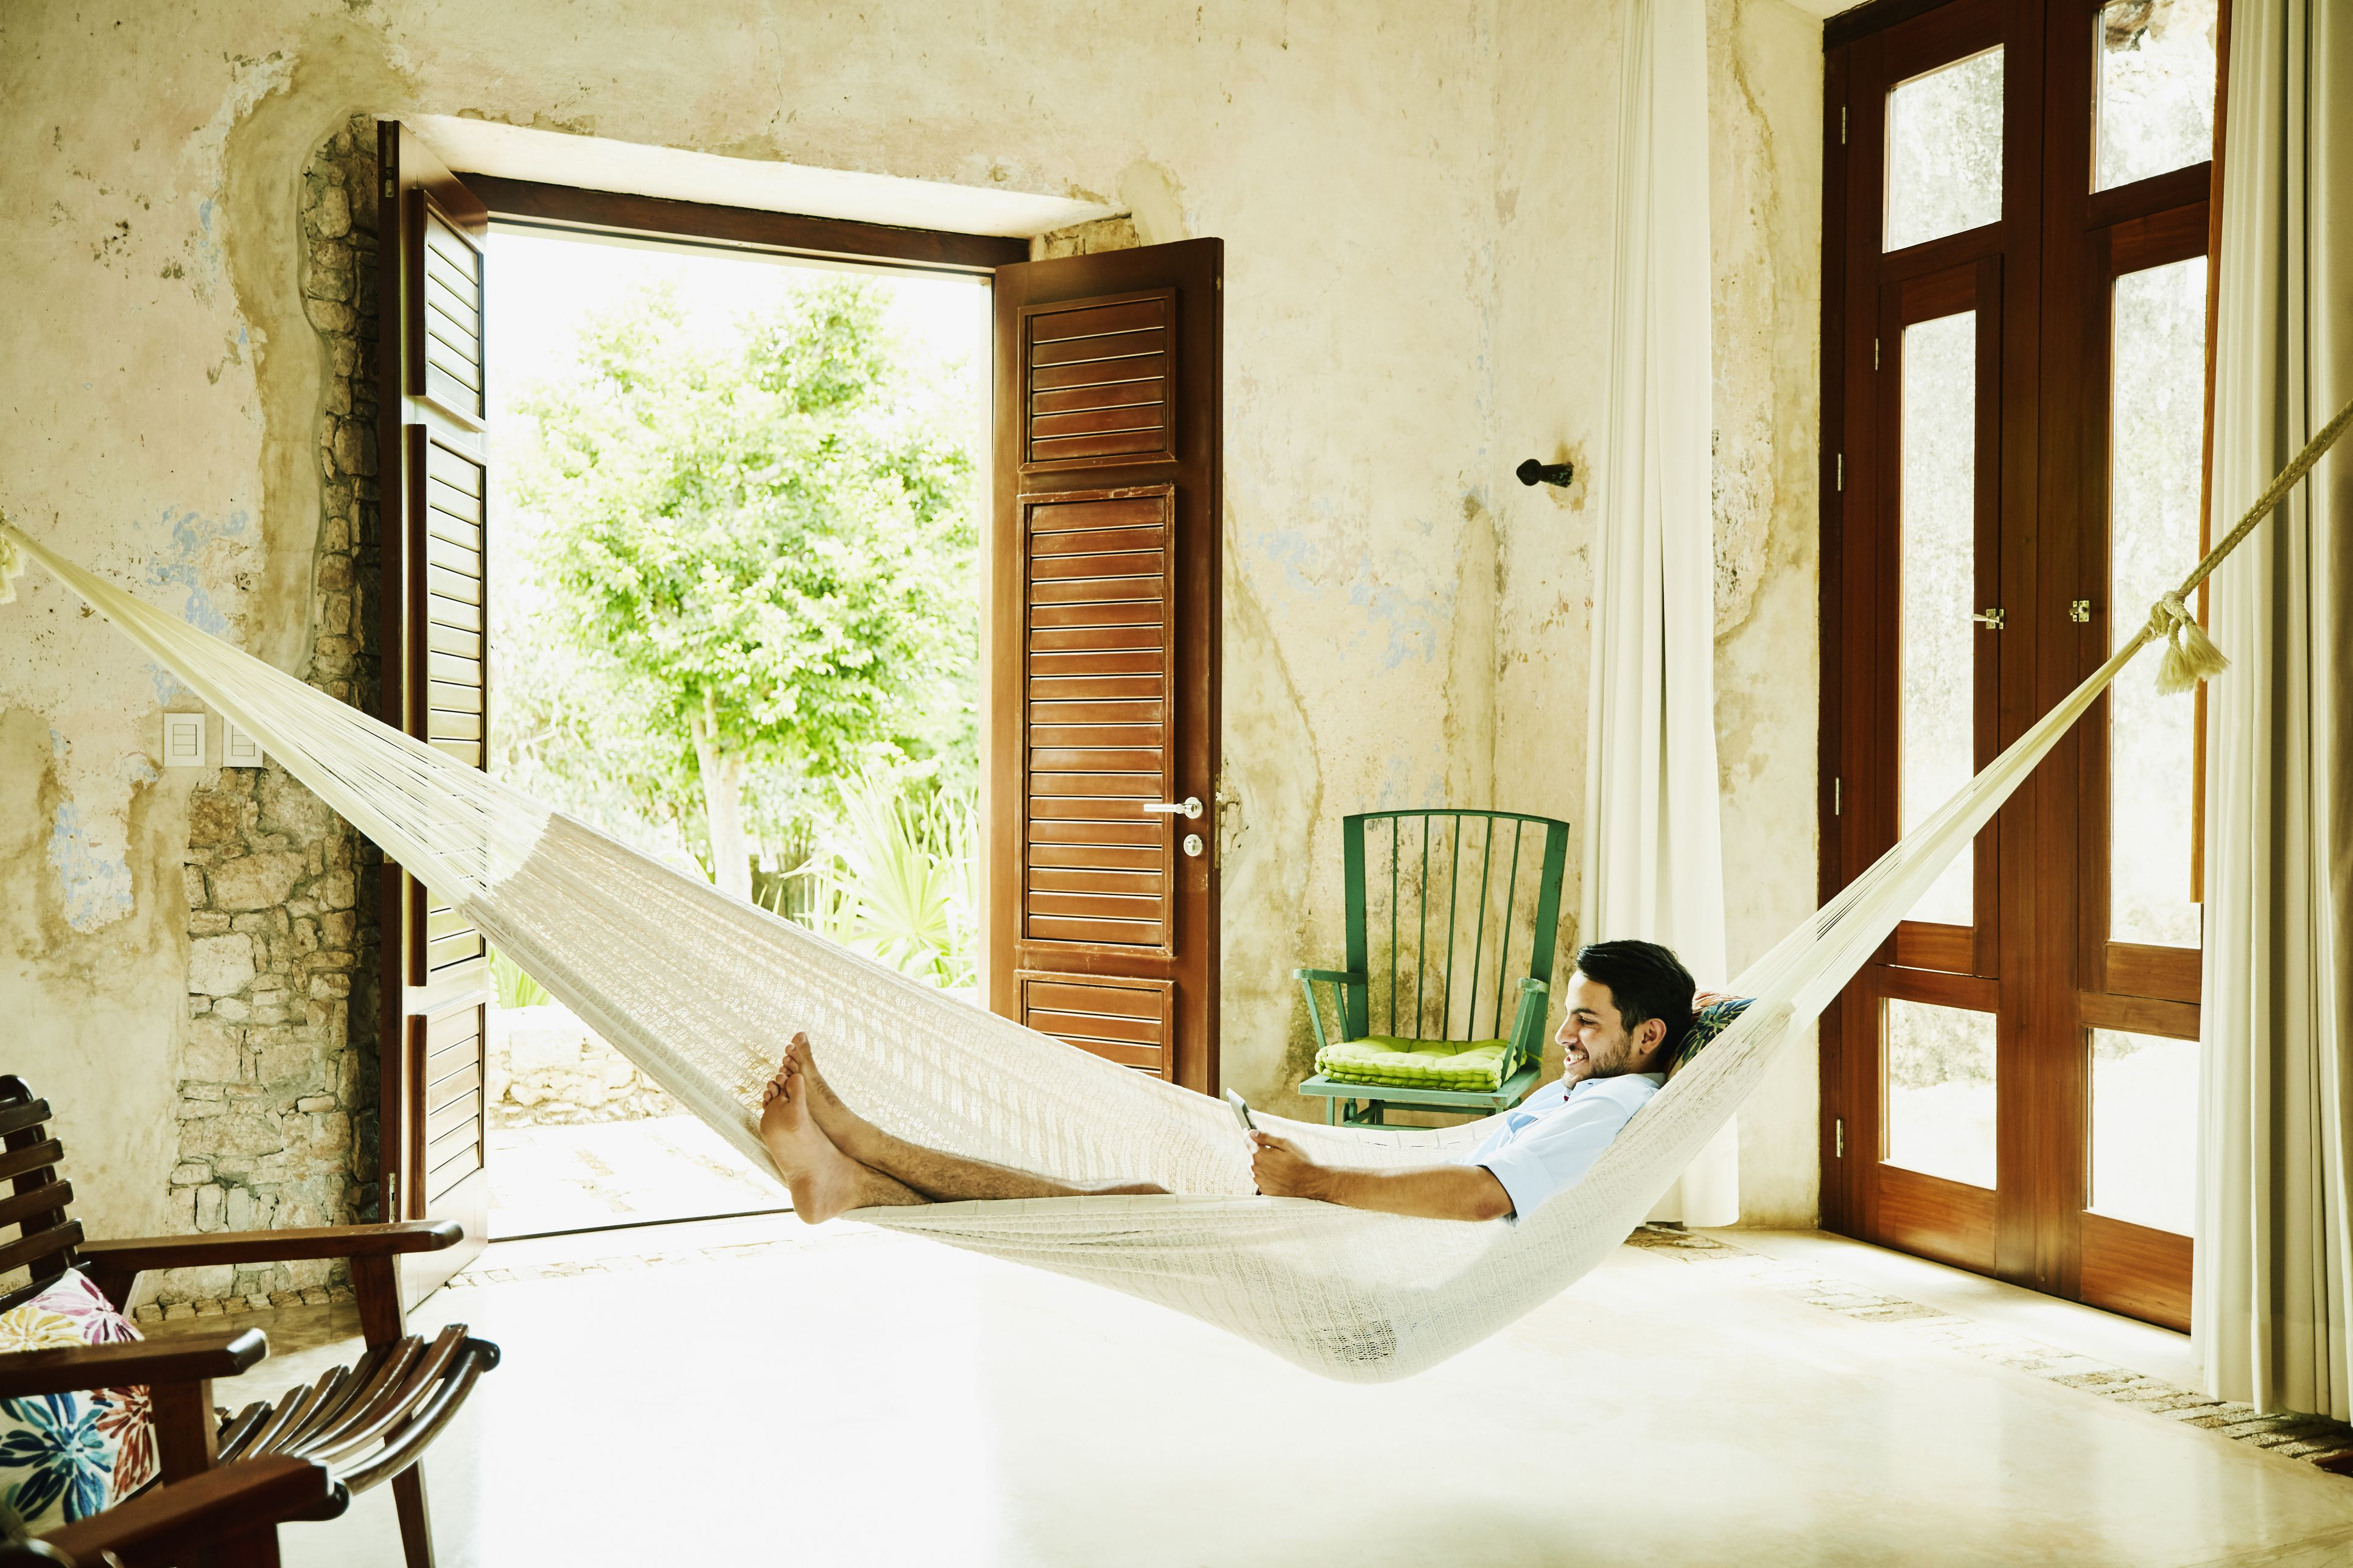 Smiling man relaxing in hammock in room at luxury resort reading digital tablet